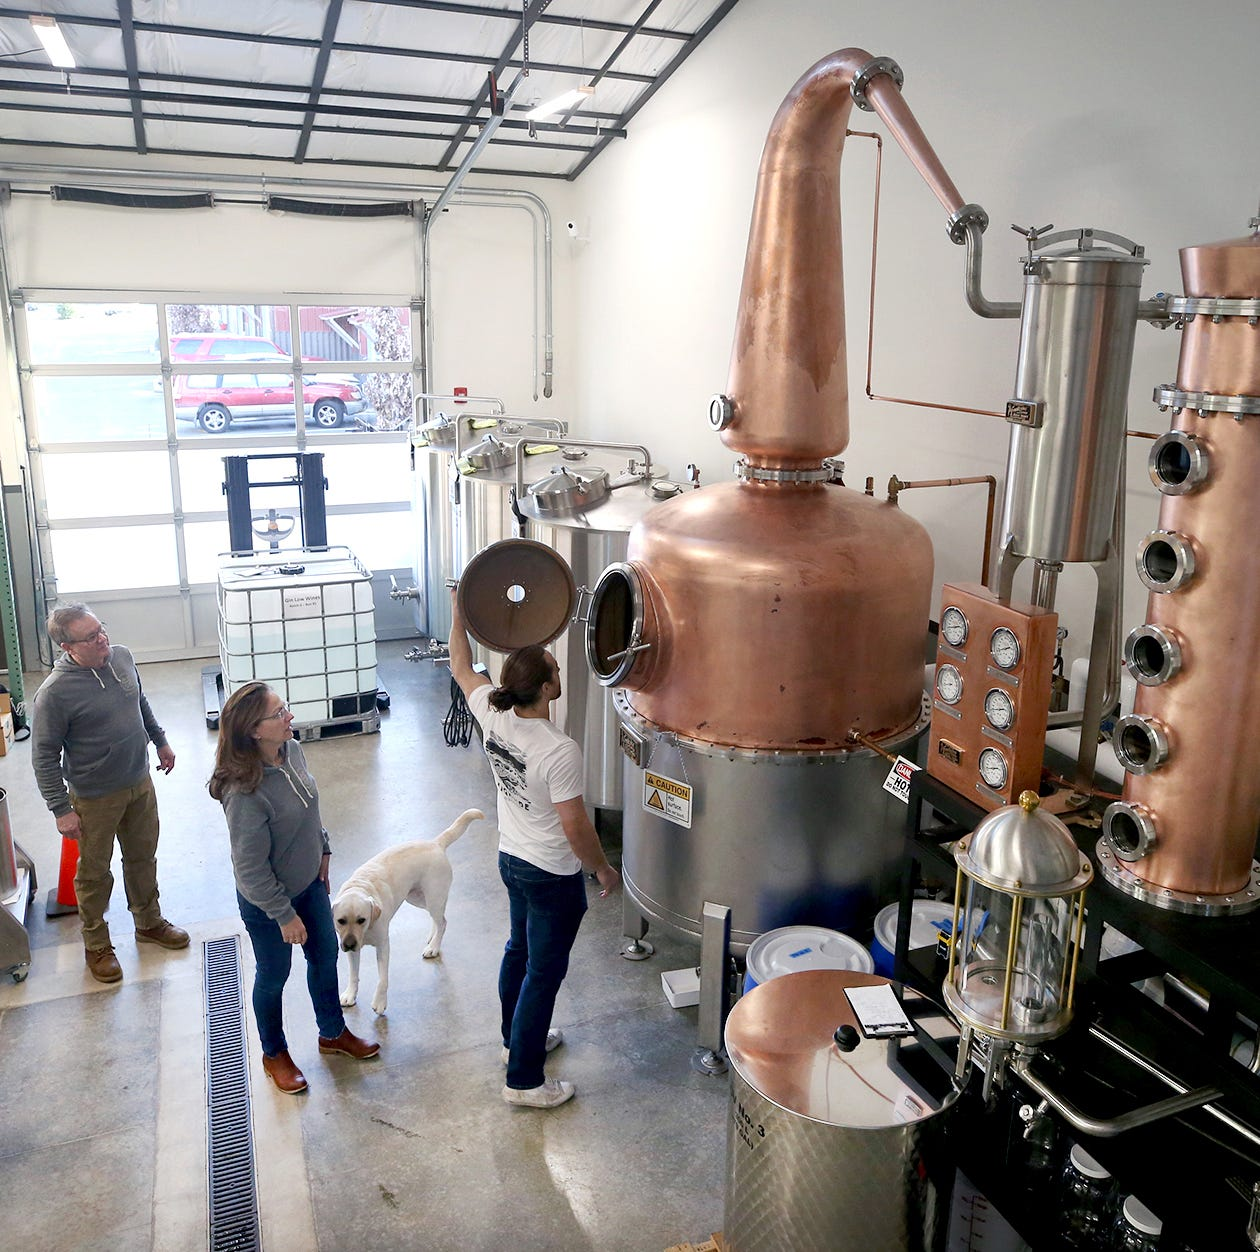 Jeff, Helen, and Matt Glenn , looking inside the special still, with dog Tucker are starting up a small craft distillery – Highside Distilling, on Bainbridge Island where they focus on making single malt whiskey, gin and amaro.